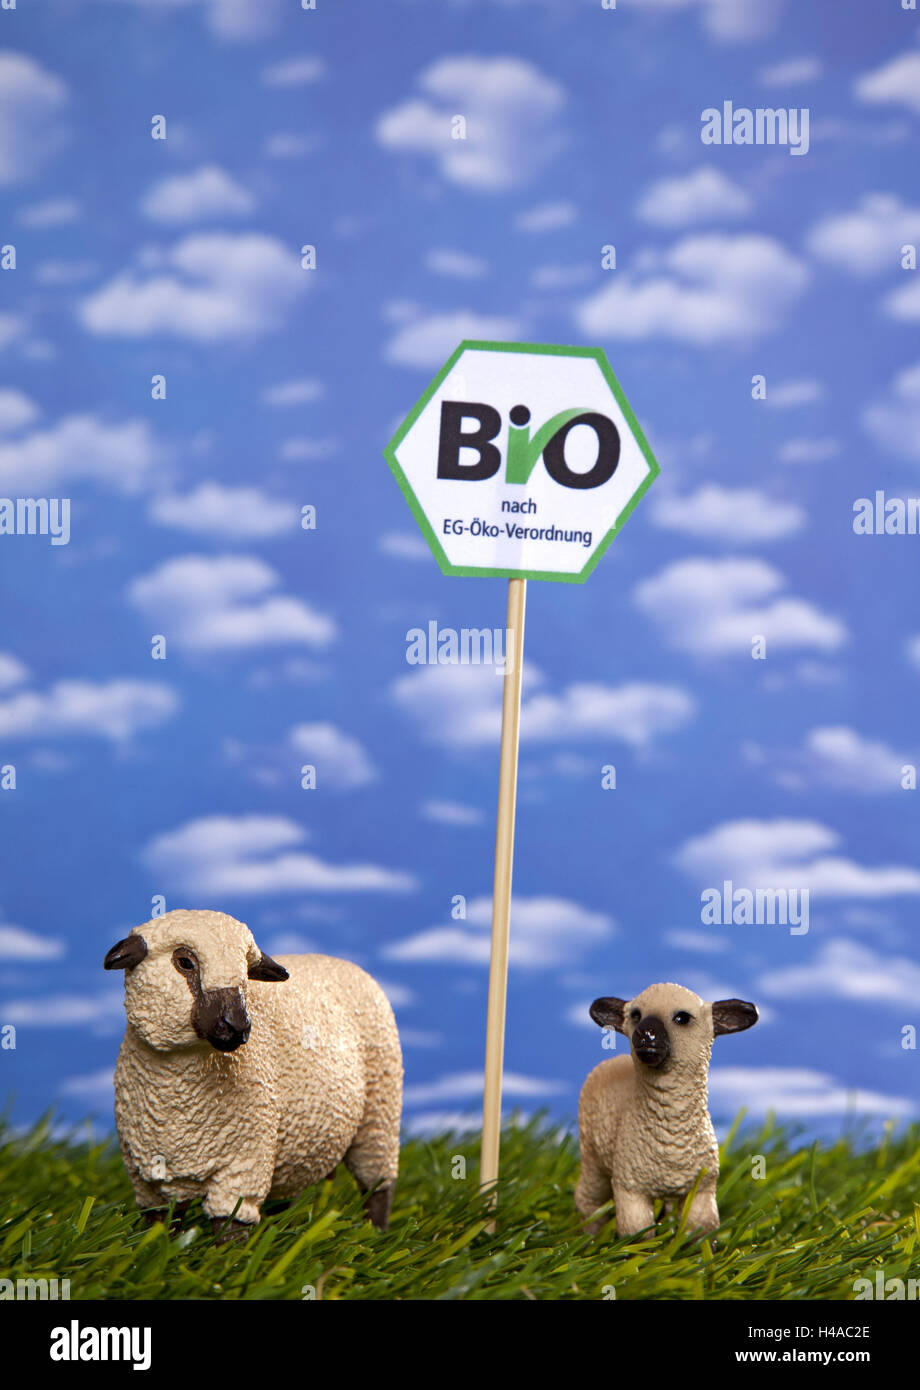 Symbolical image, organic, sustainability, meat, origin, - Stock Image